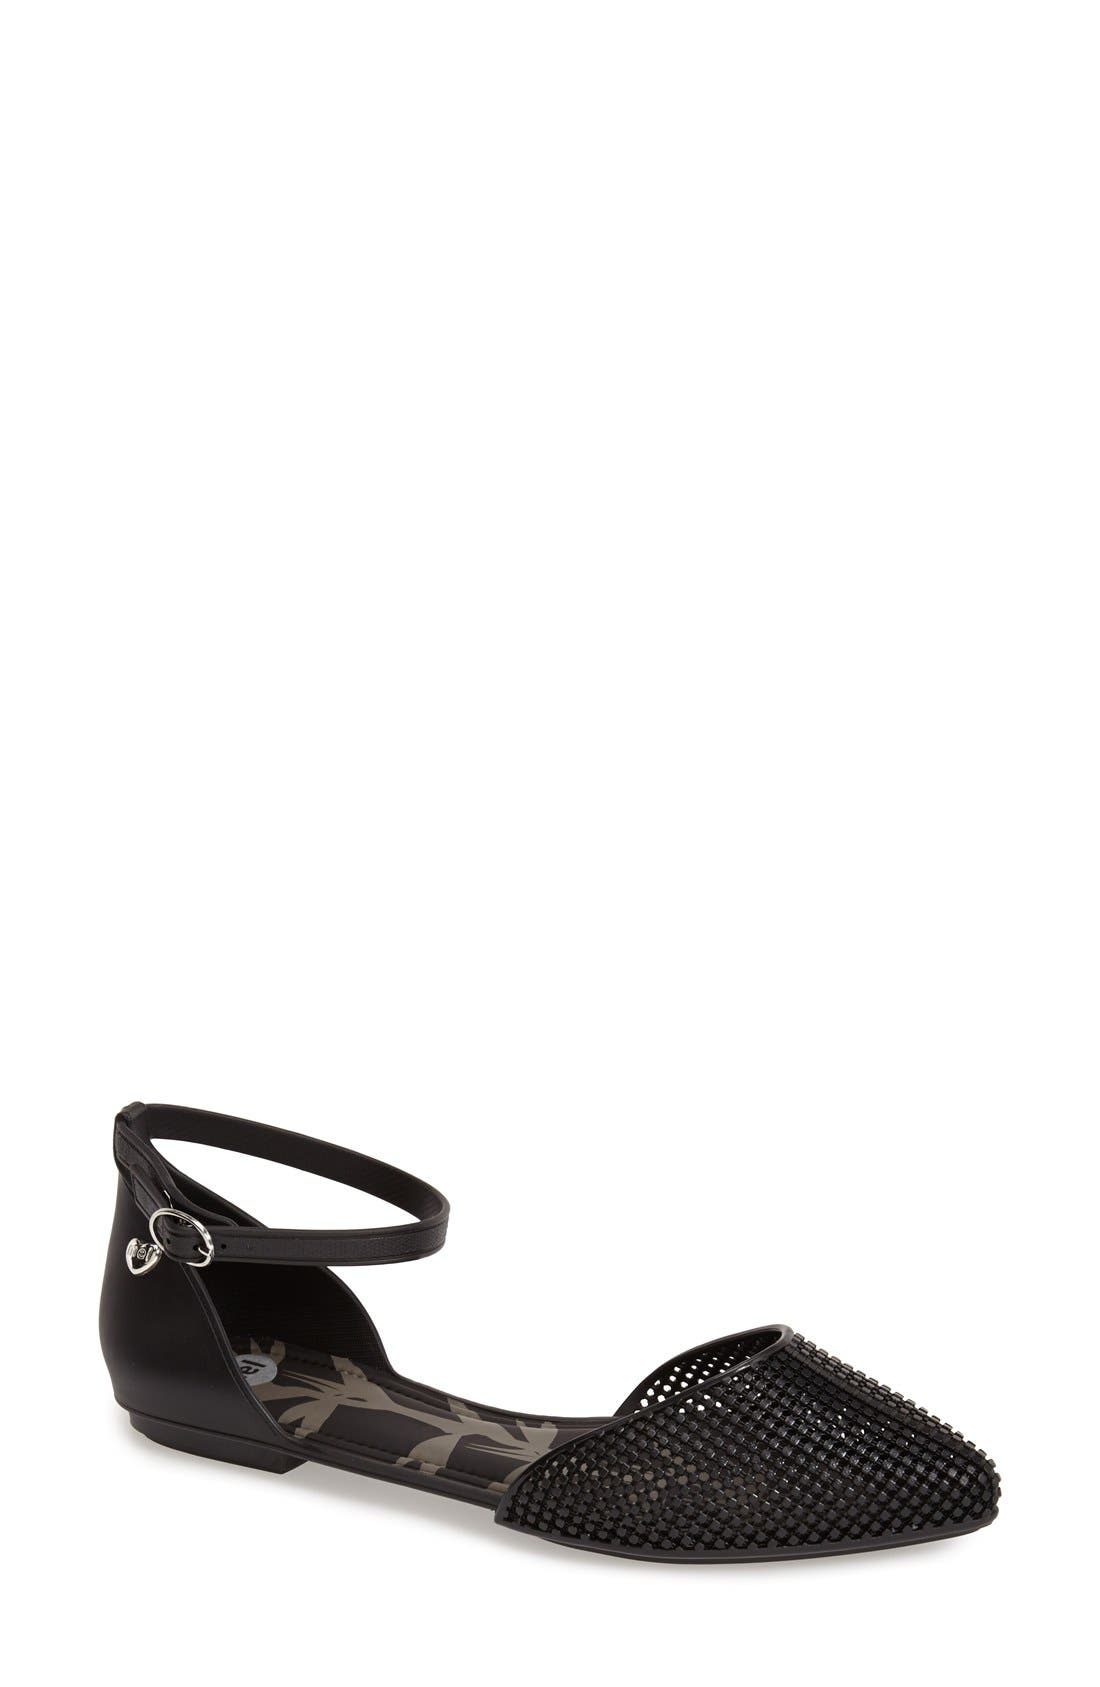 MEL BY MELISSA 'Pitanga' Ankle Strap Flat, Main, color, 001